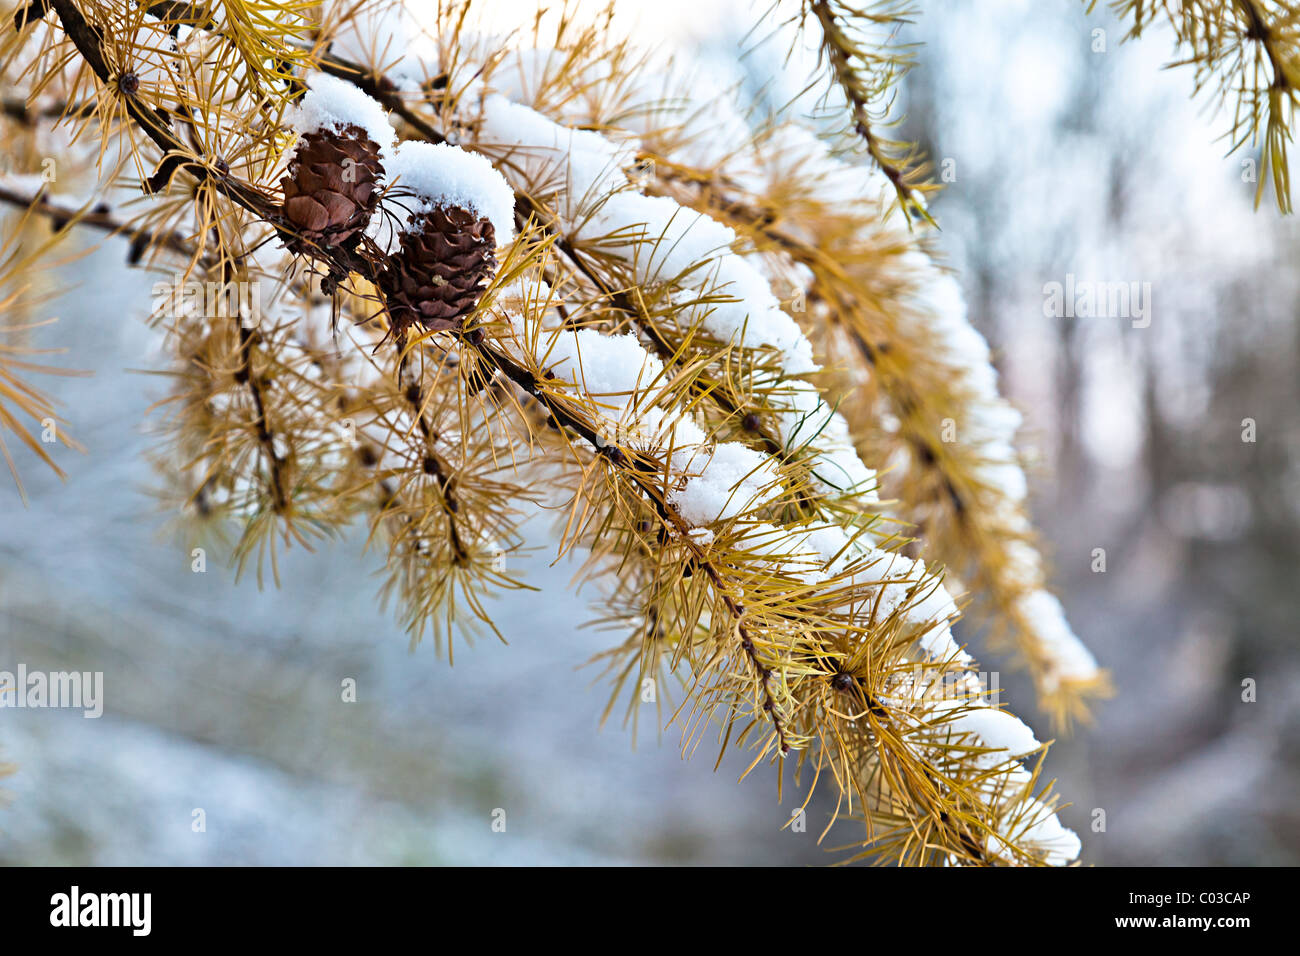 Pine cones on branch in snow Wales UK - Stock Image